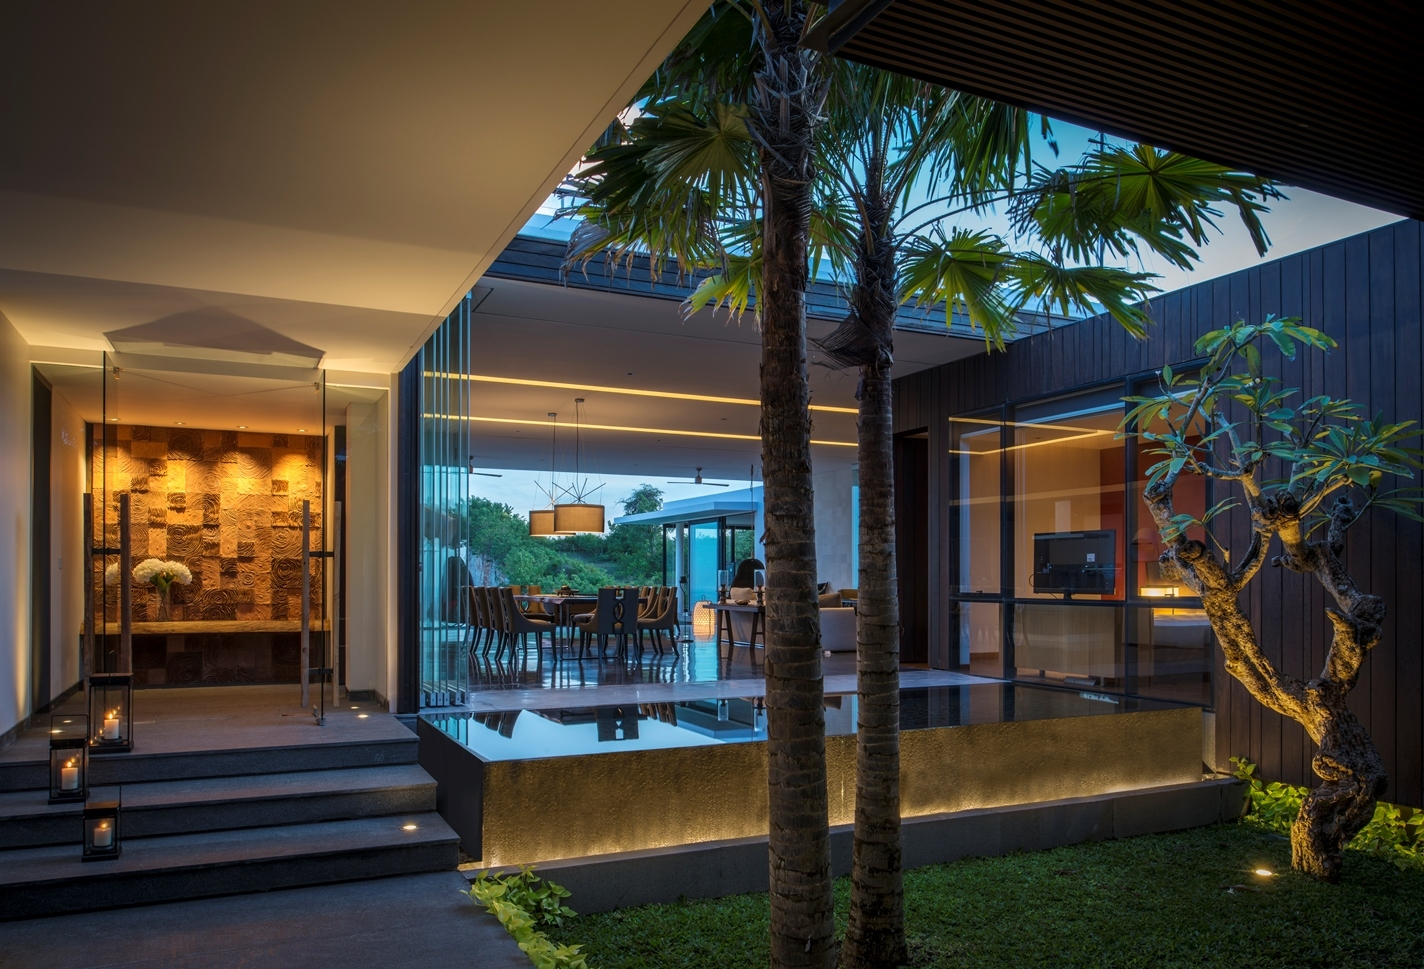 Modern Tropical Home with Interior Courtyard